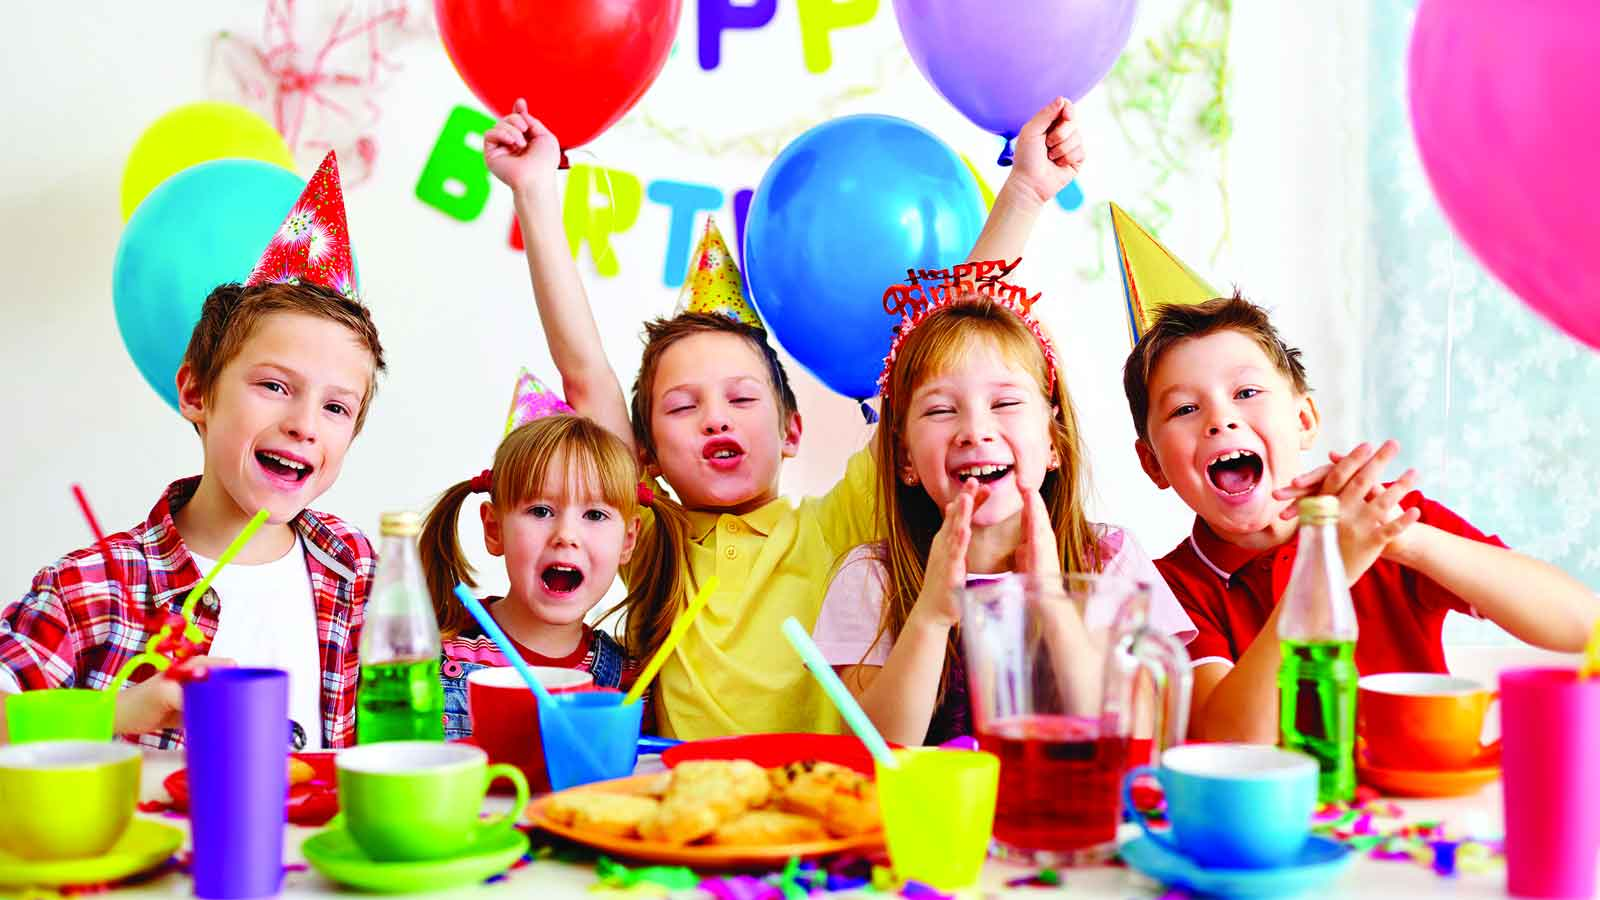 3 Simple Steps for Kids' Birthday Party Etiquette